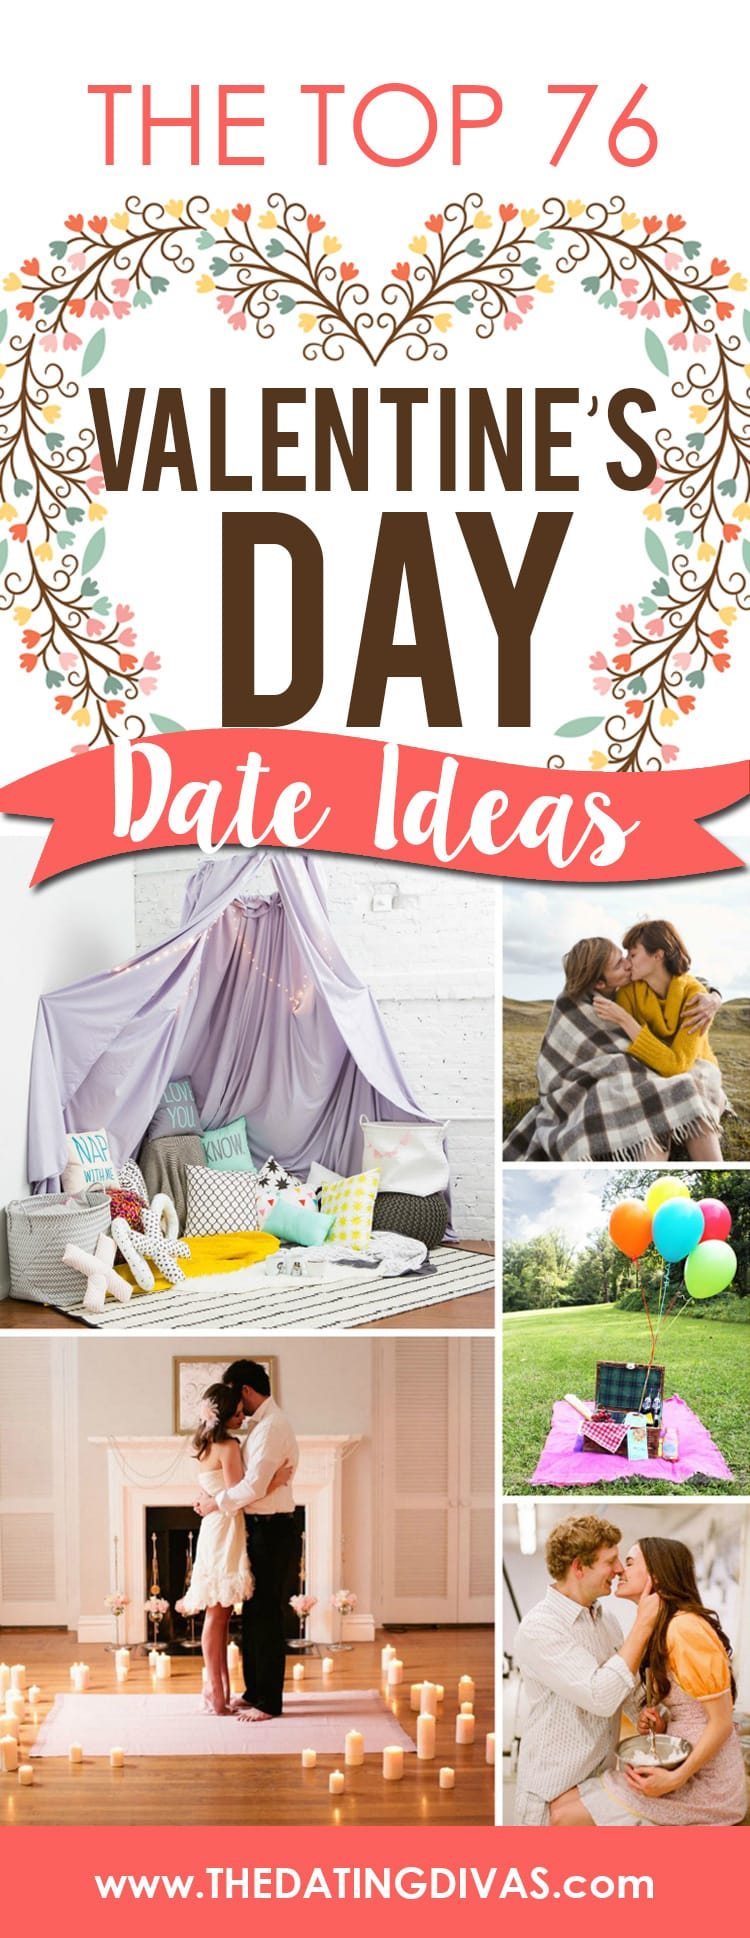 Top 76 Valentine's Day Date Ideas to try this Valentines day. :) #ValentineDayDate